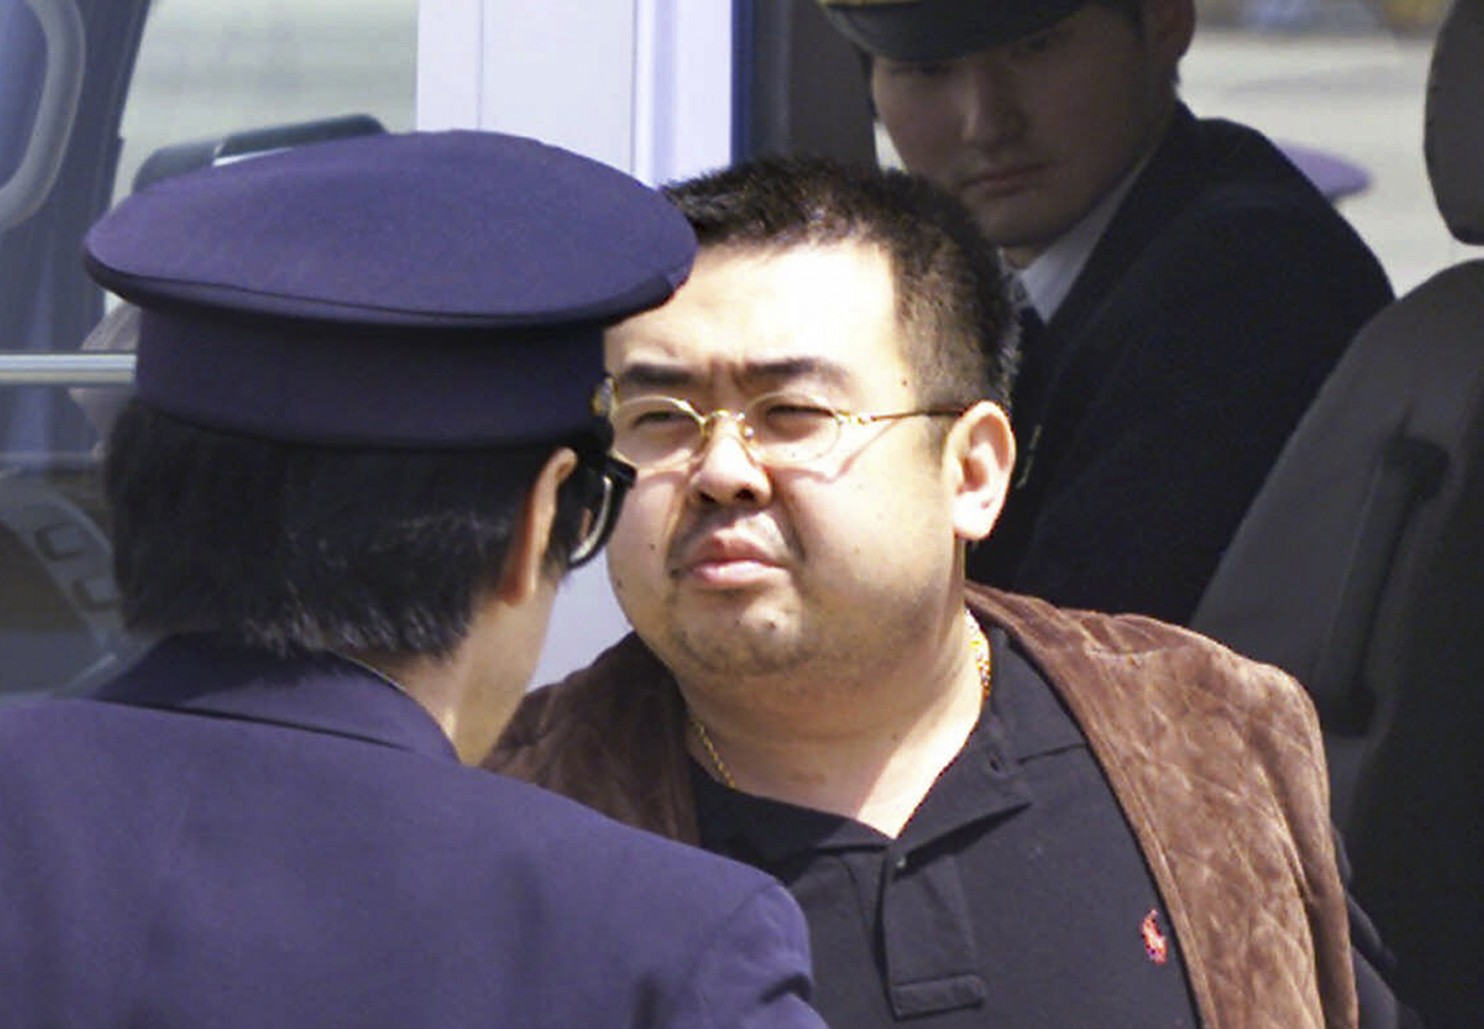 A photo of Kim Jong-Nam in 2001 where he was escorted by Japanese police at the airport in Narita, Japan.